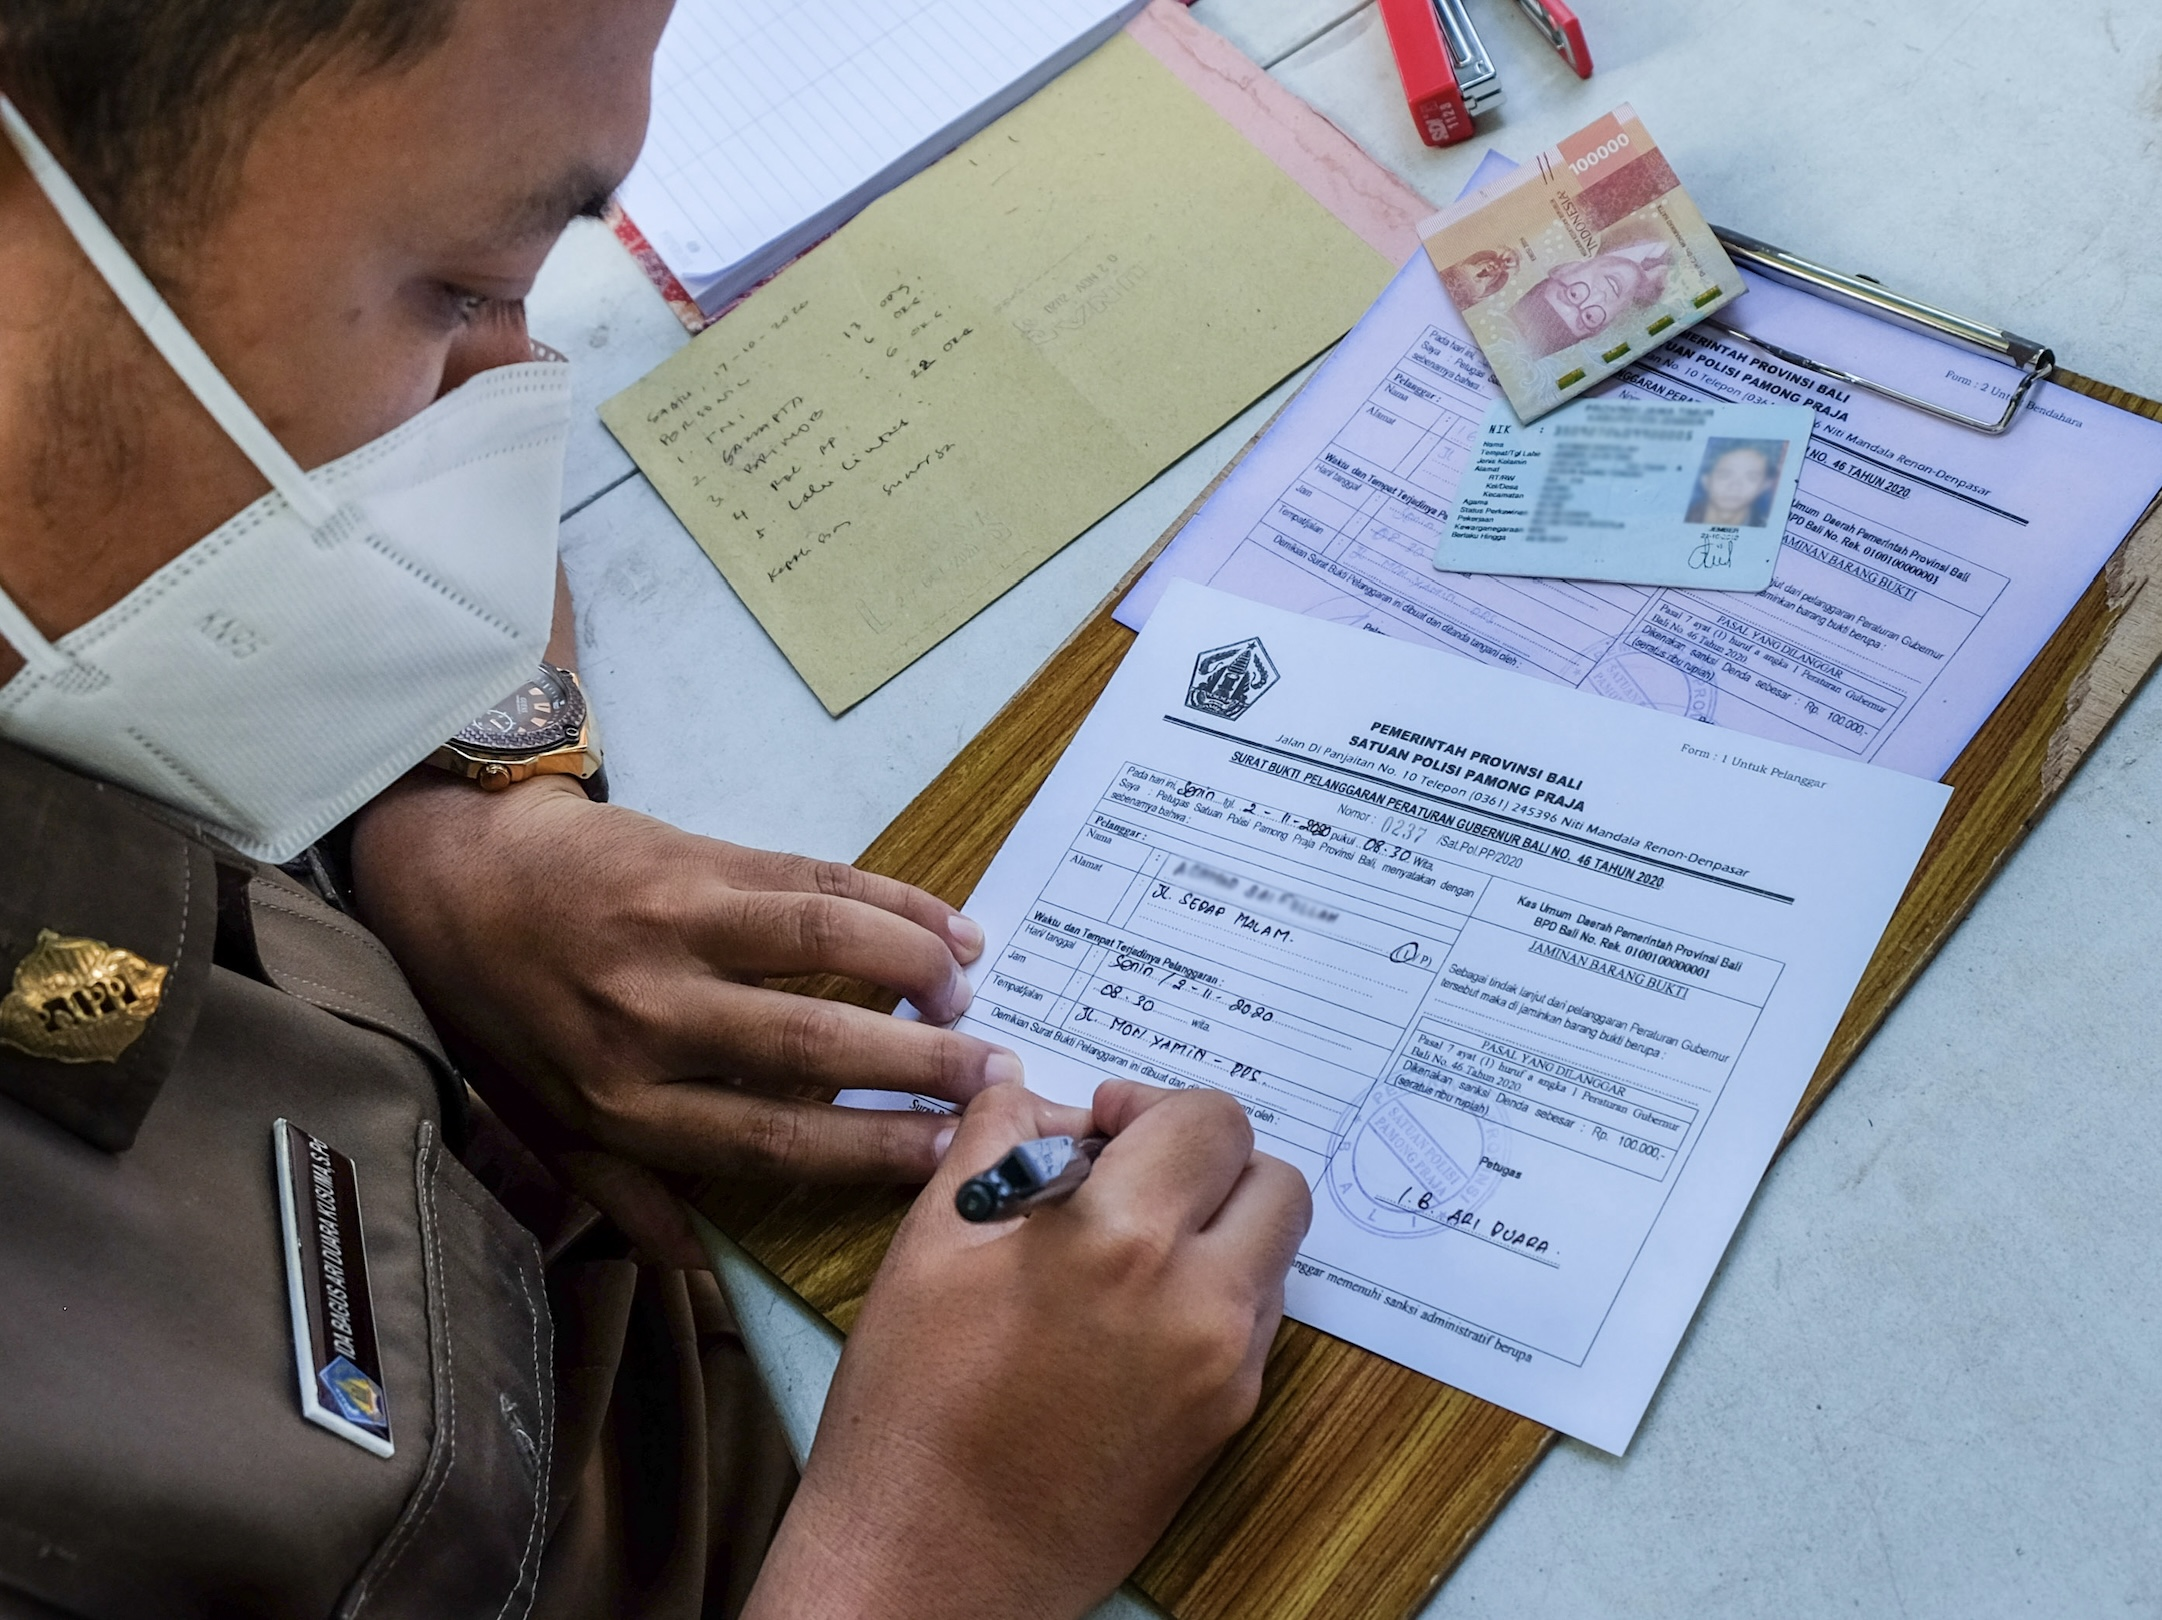 Turkish National Deported From Bali After Overstaying His Visa